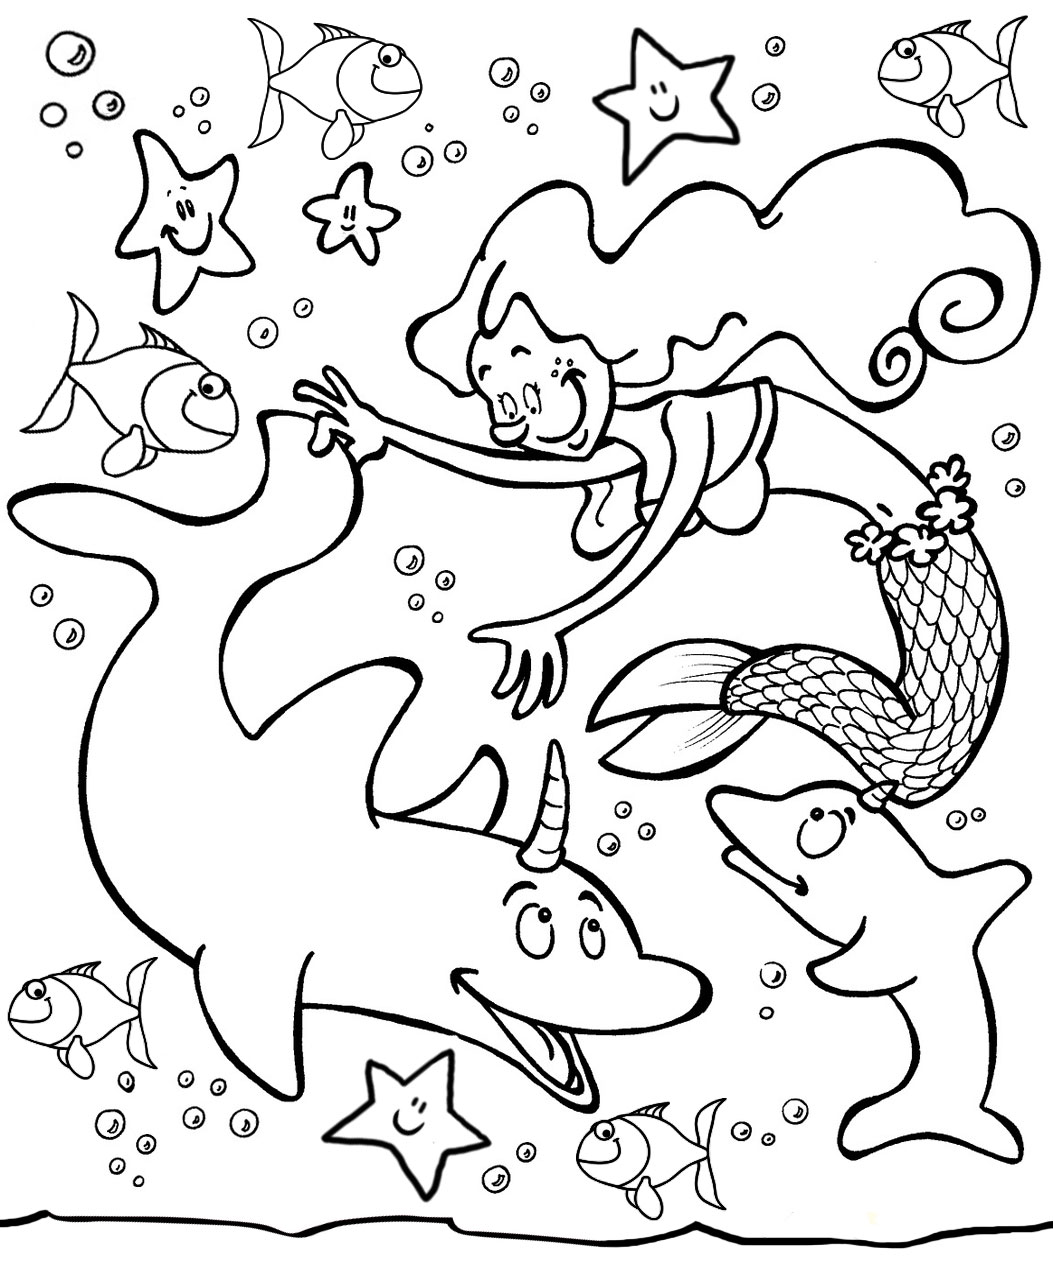 Free printable colouring of a mermaid in the ocean, playing with her dolphin friends